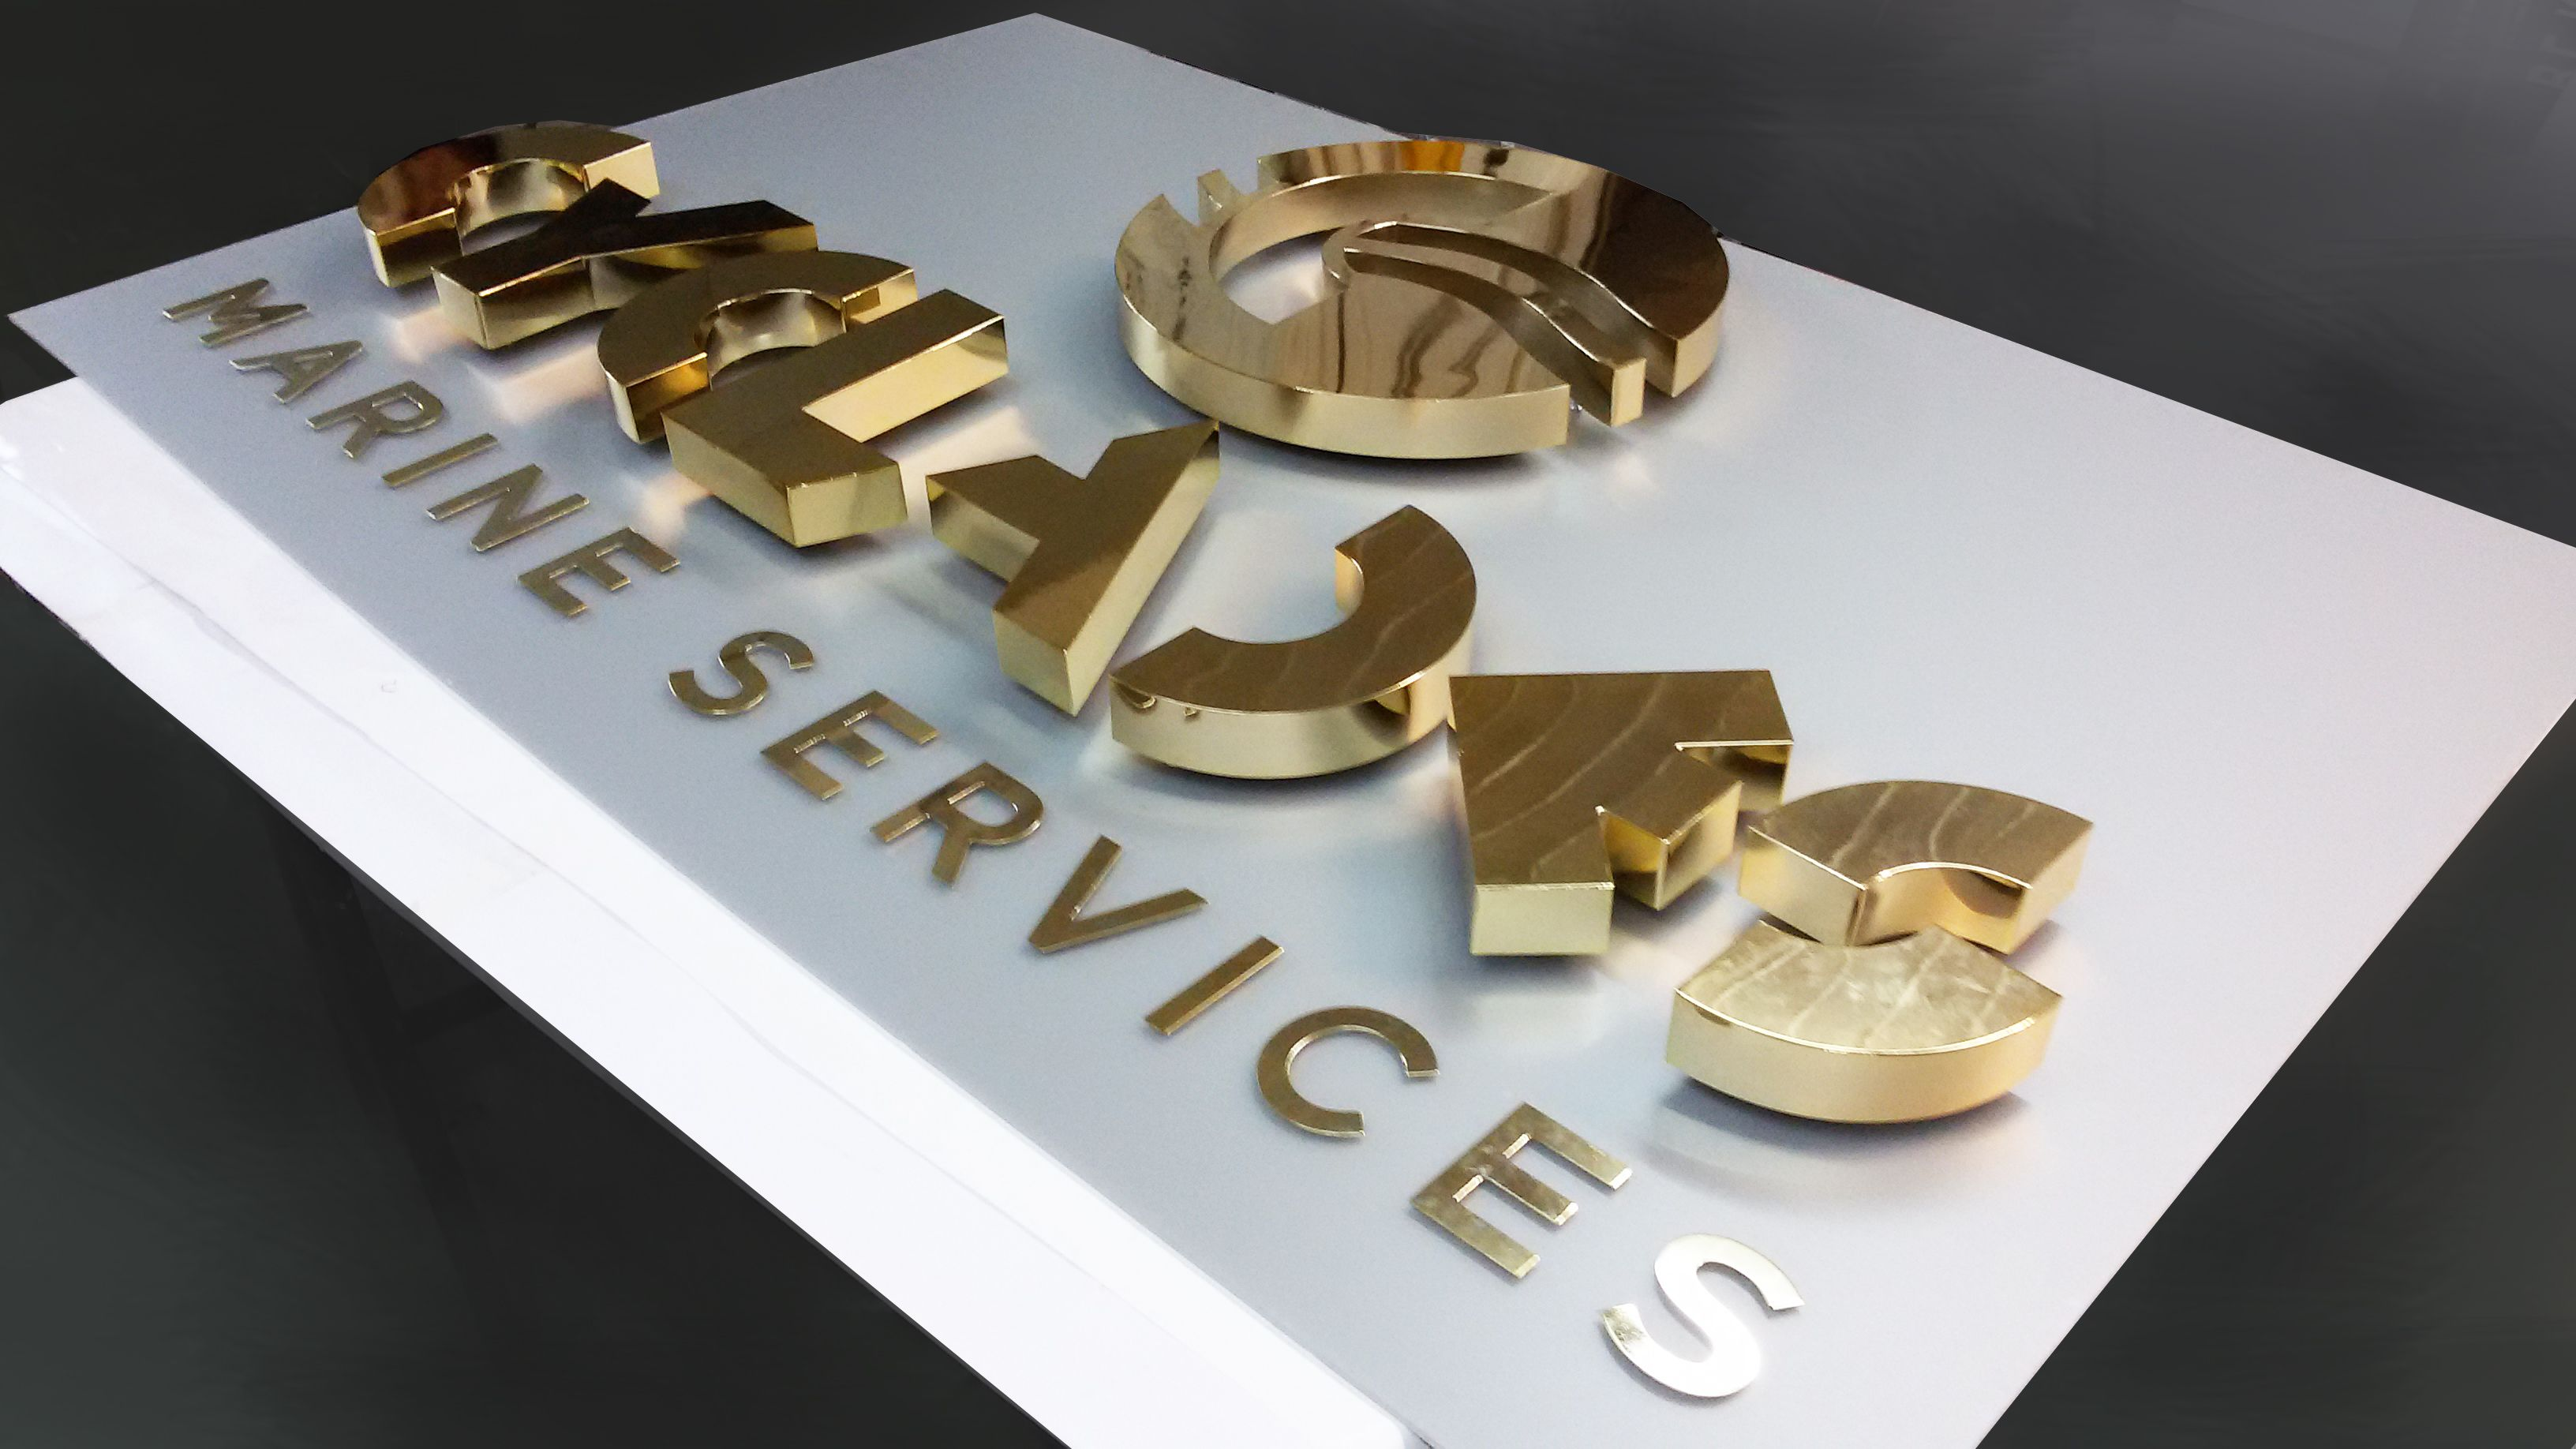 Cyclades - marine services Gold - plating signage indoor